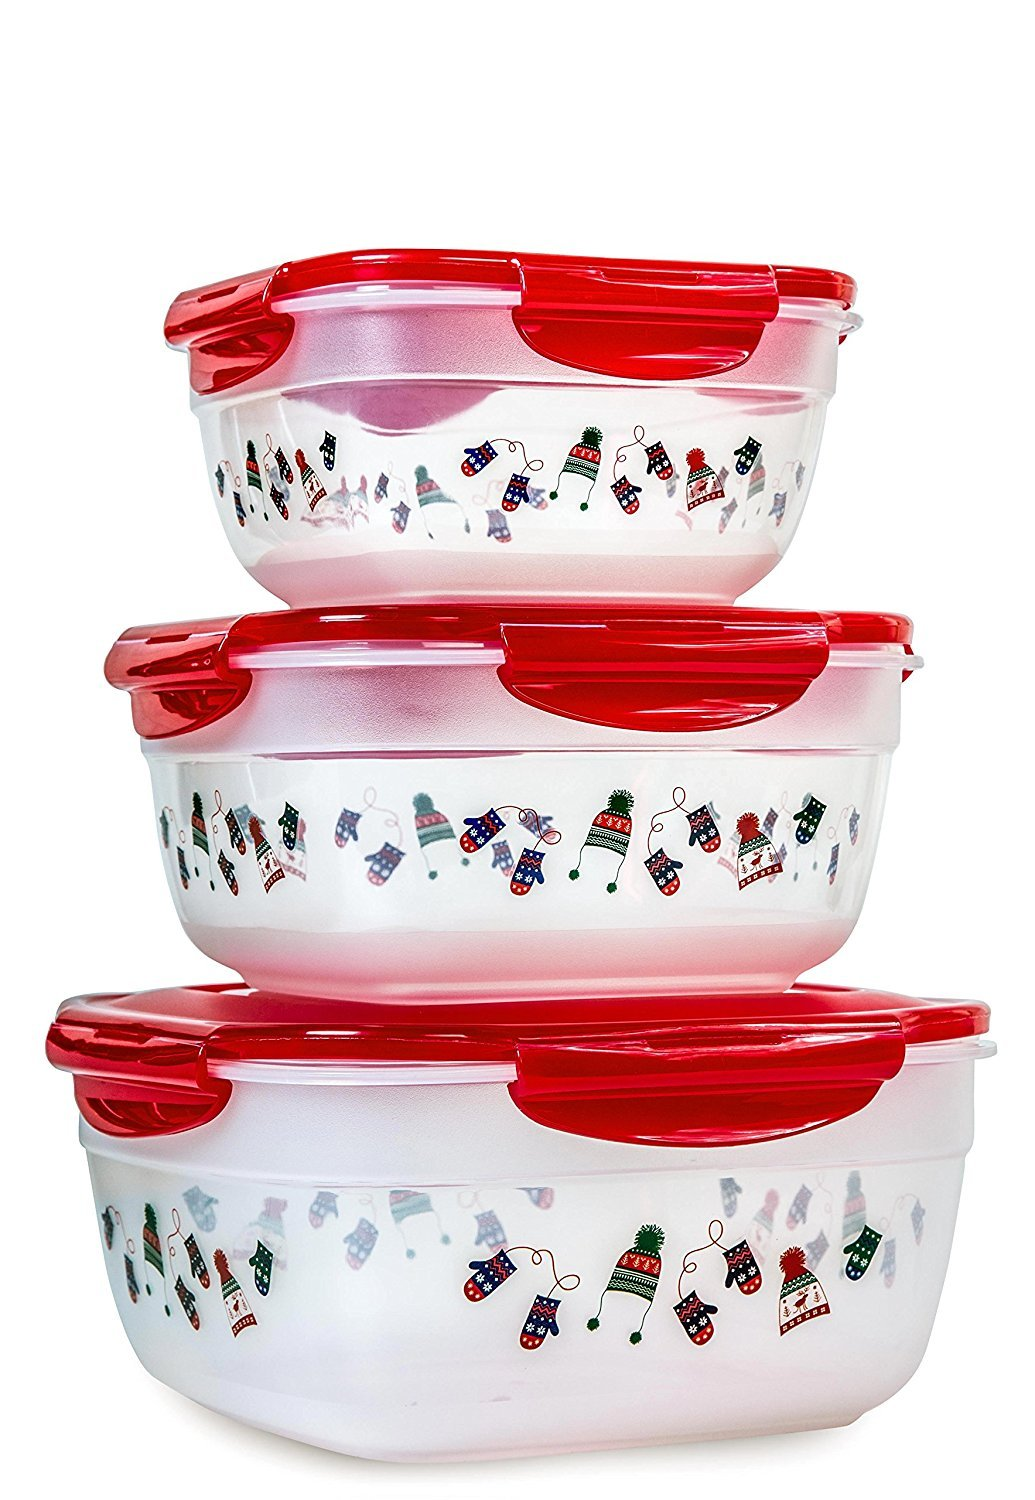 Lock & Lock 6pcs Set Square Plastic Food Storage Container Red Mitten Pattern with Nesting Design and Airtight Anti-Spill Proof Technology